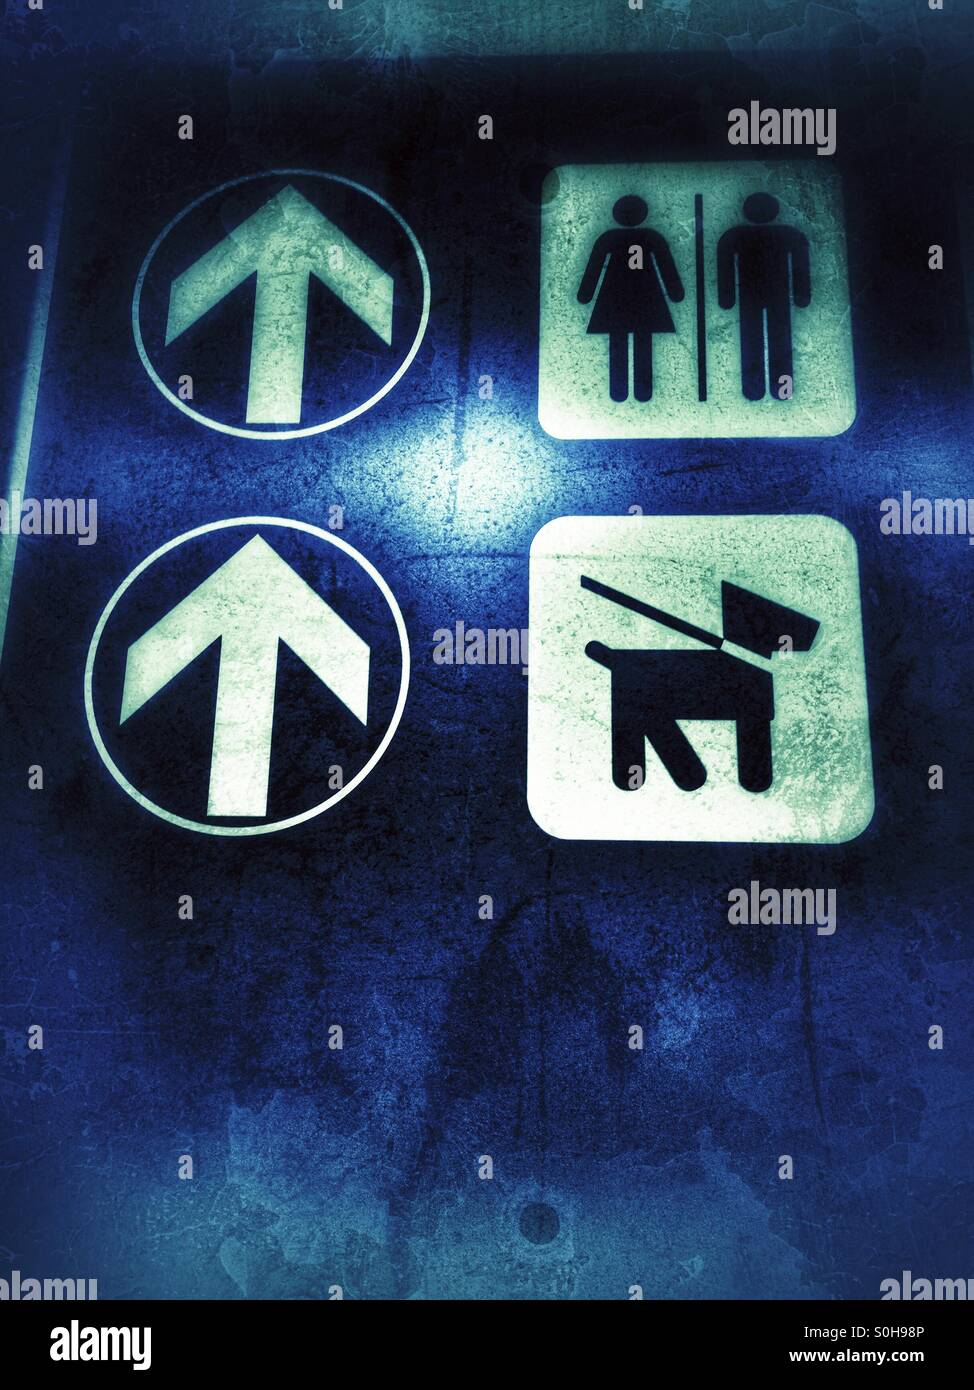 Restrooms directions at elevator - Stock Image